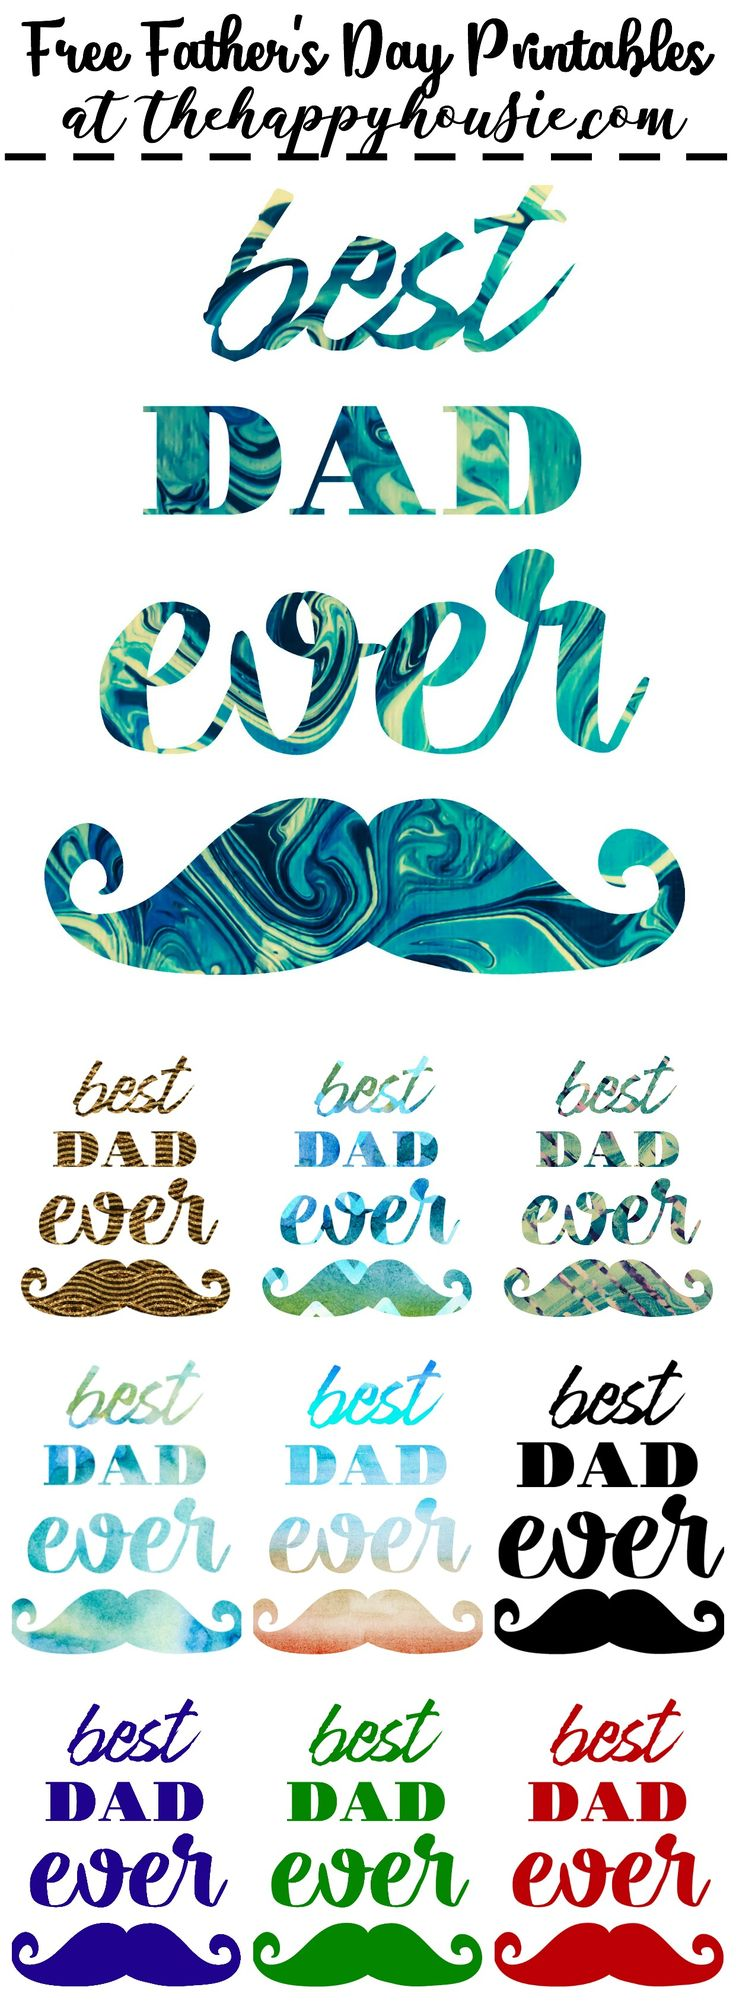 321 best Free printables images on Pinterest | Free printables, Free ...